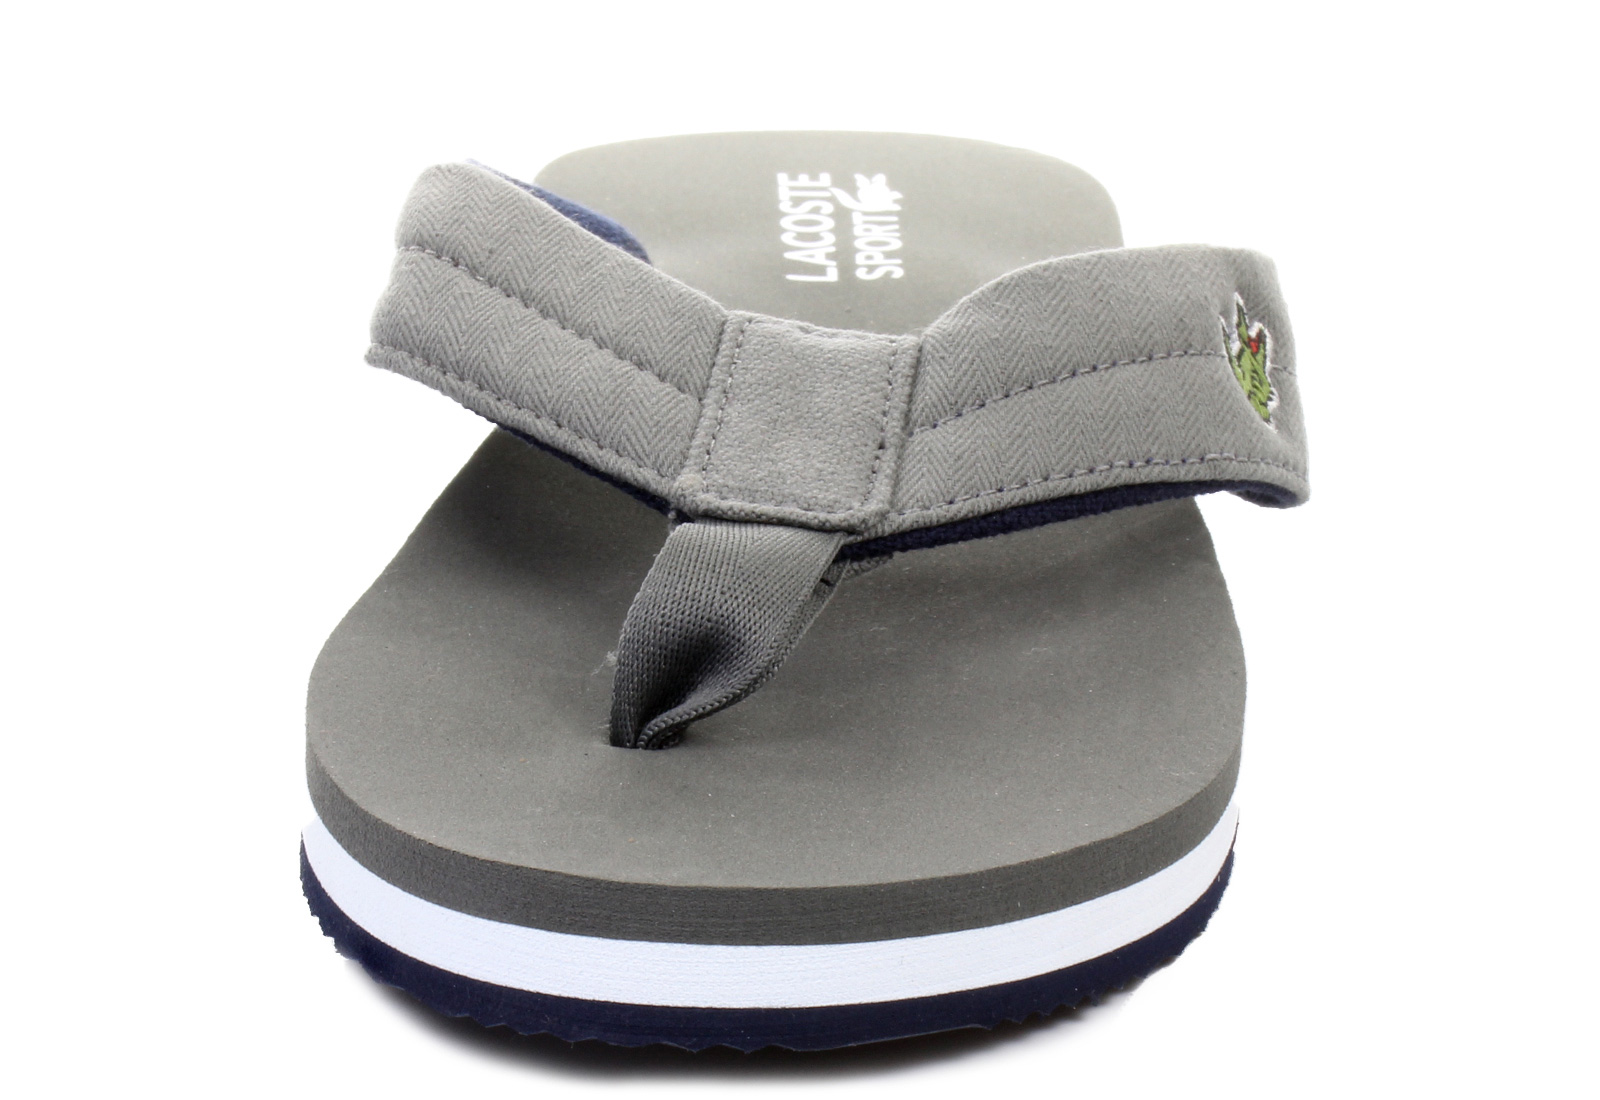 b0677cd87 Lacoste Slippers - Randle - 141spm1057-12c - Online shop for ...